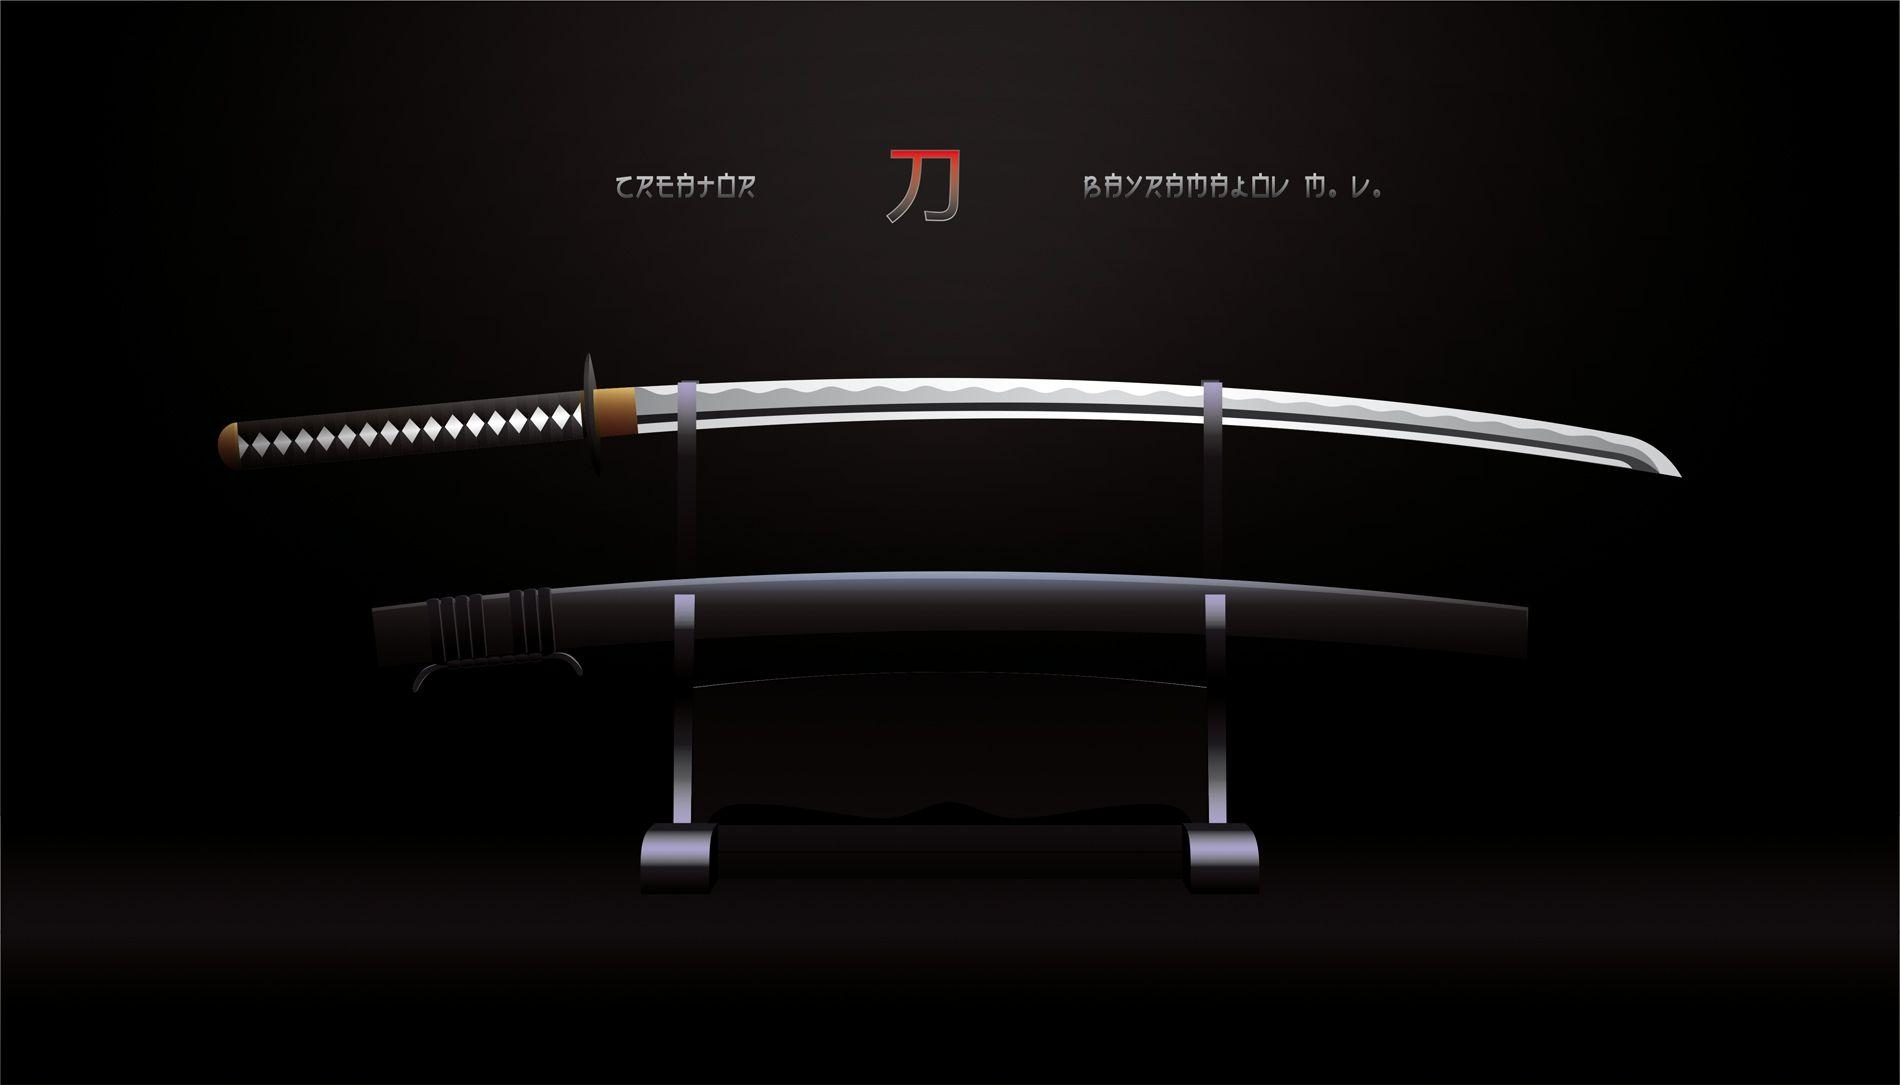 samurai katana wallpaper hd - photo #13